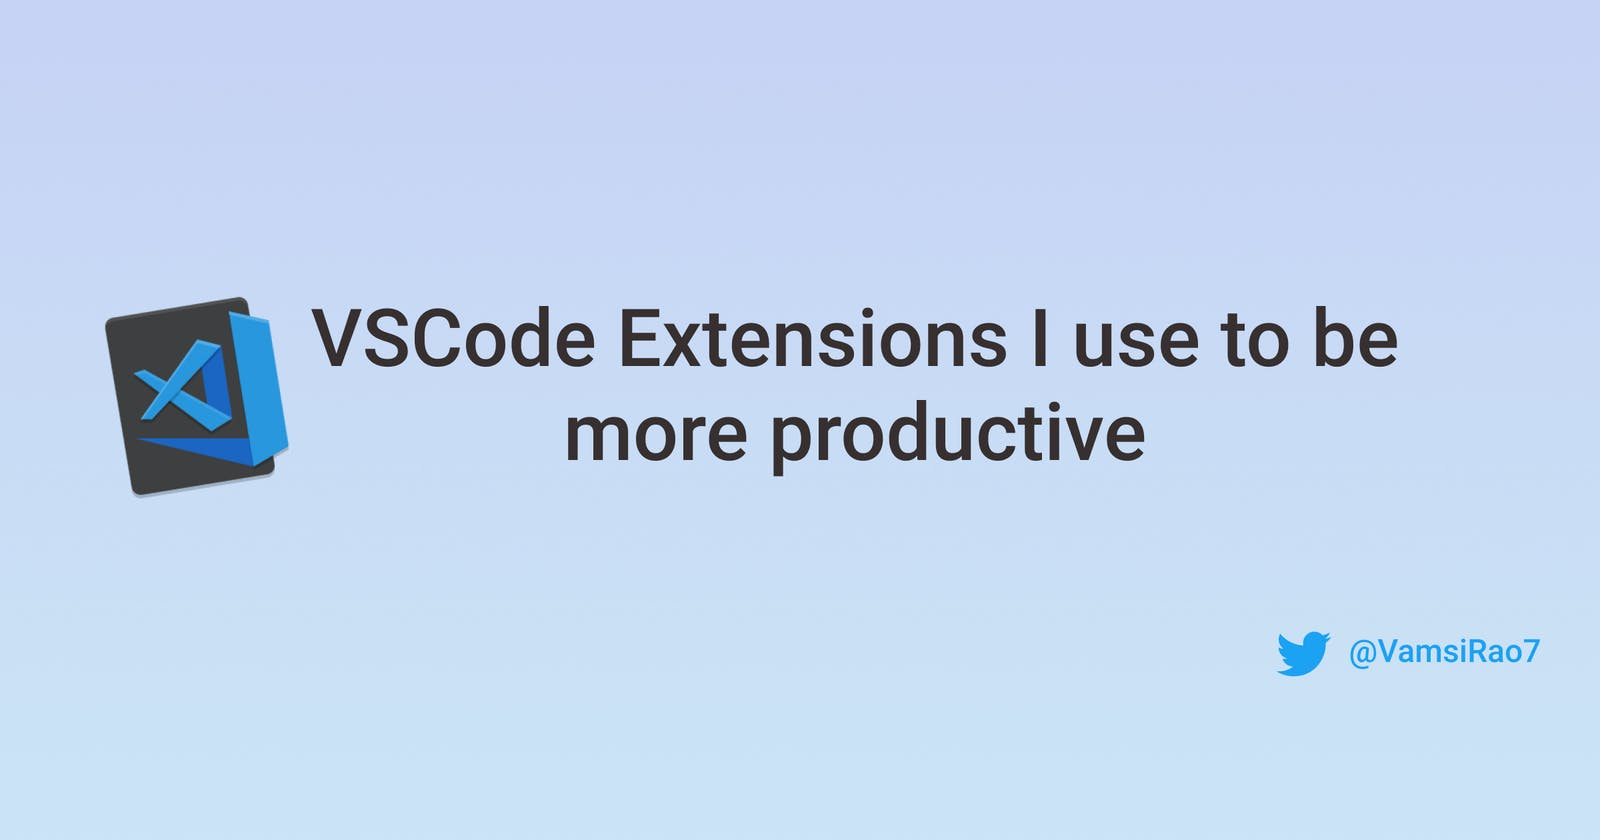 VS Code extensions I use to be more productive